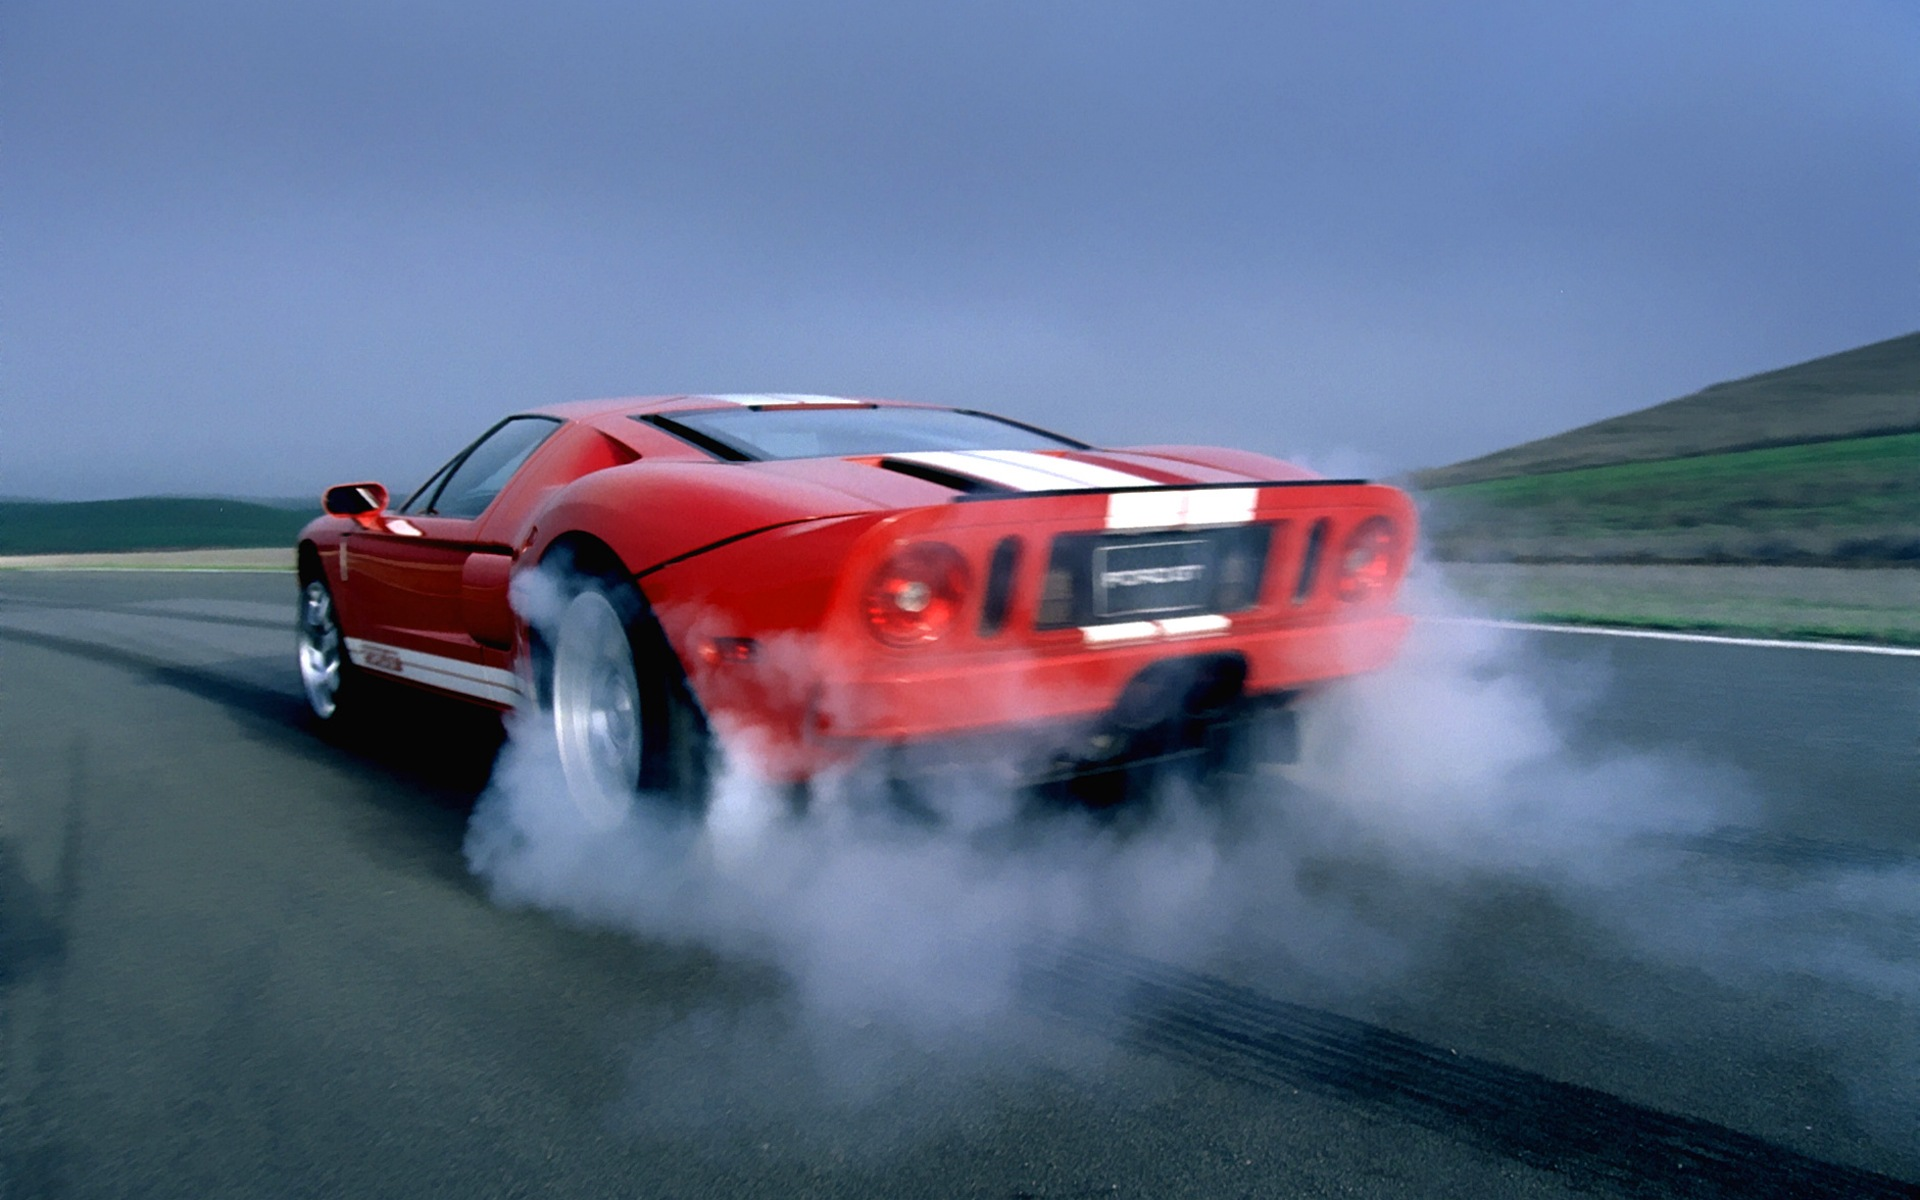 2005 Ford Gt Savers Automobile Wallpapers 2005 Ford Gt Savers Automobile Stock Photos